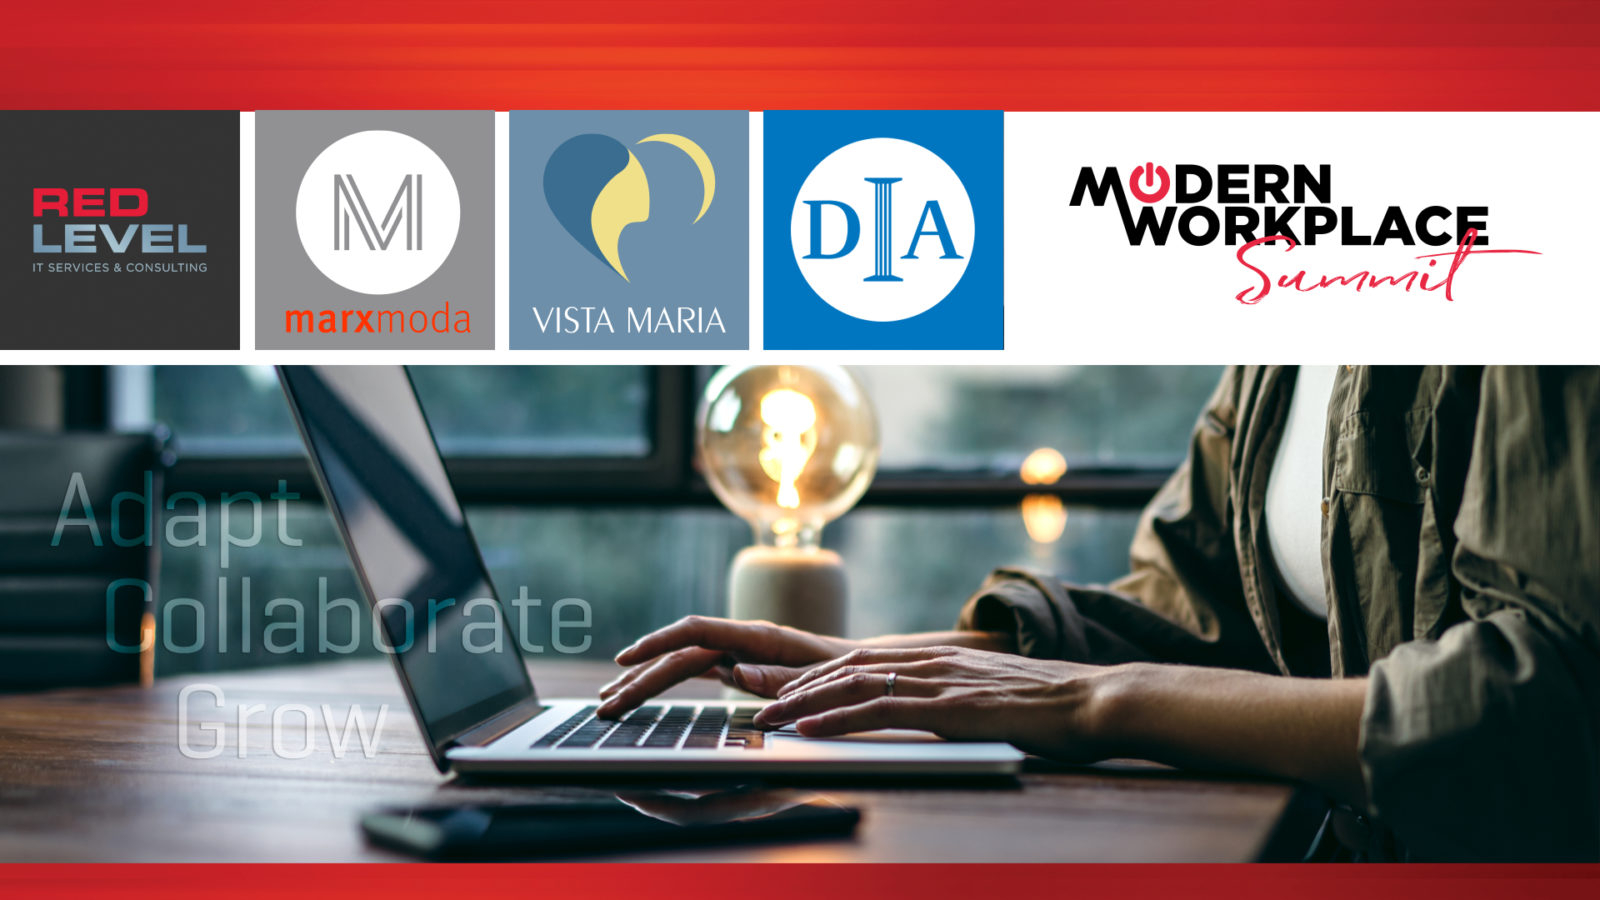 A flyer for the Red Level Modern Workplace Summit with logos from MarxModa, the DIA, and Visa Maria.